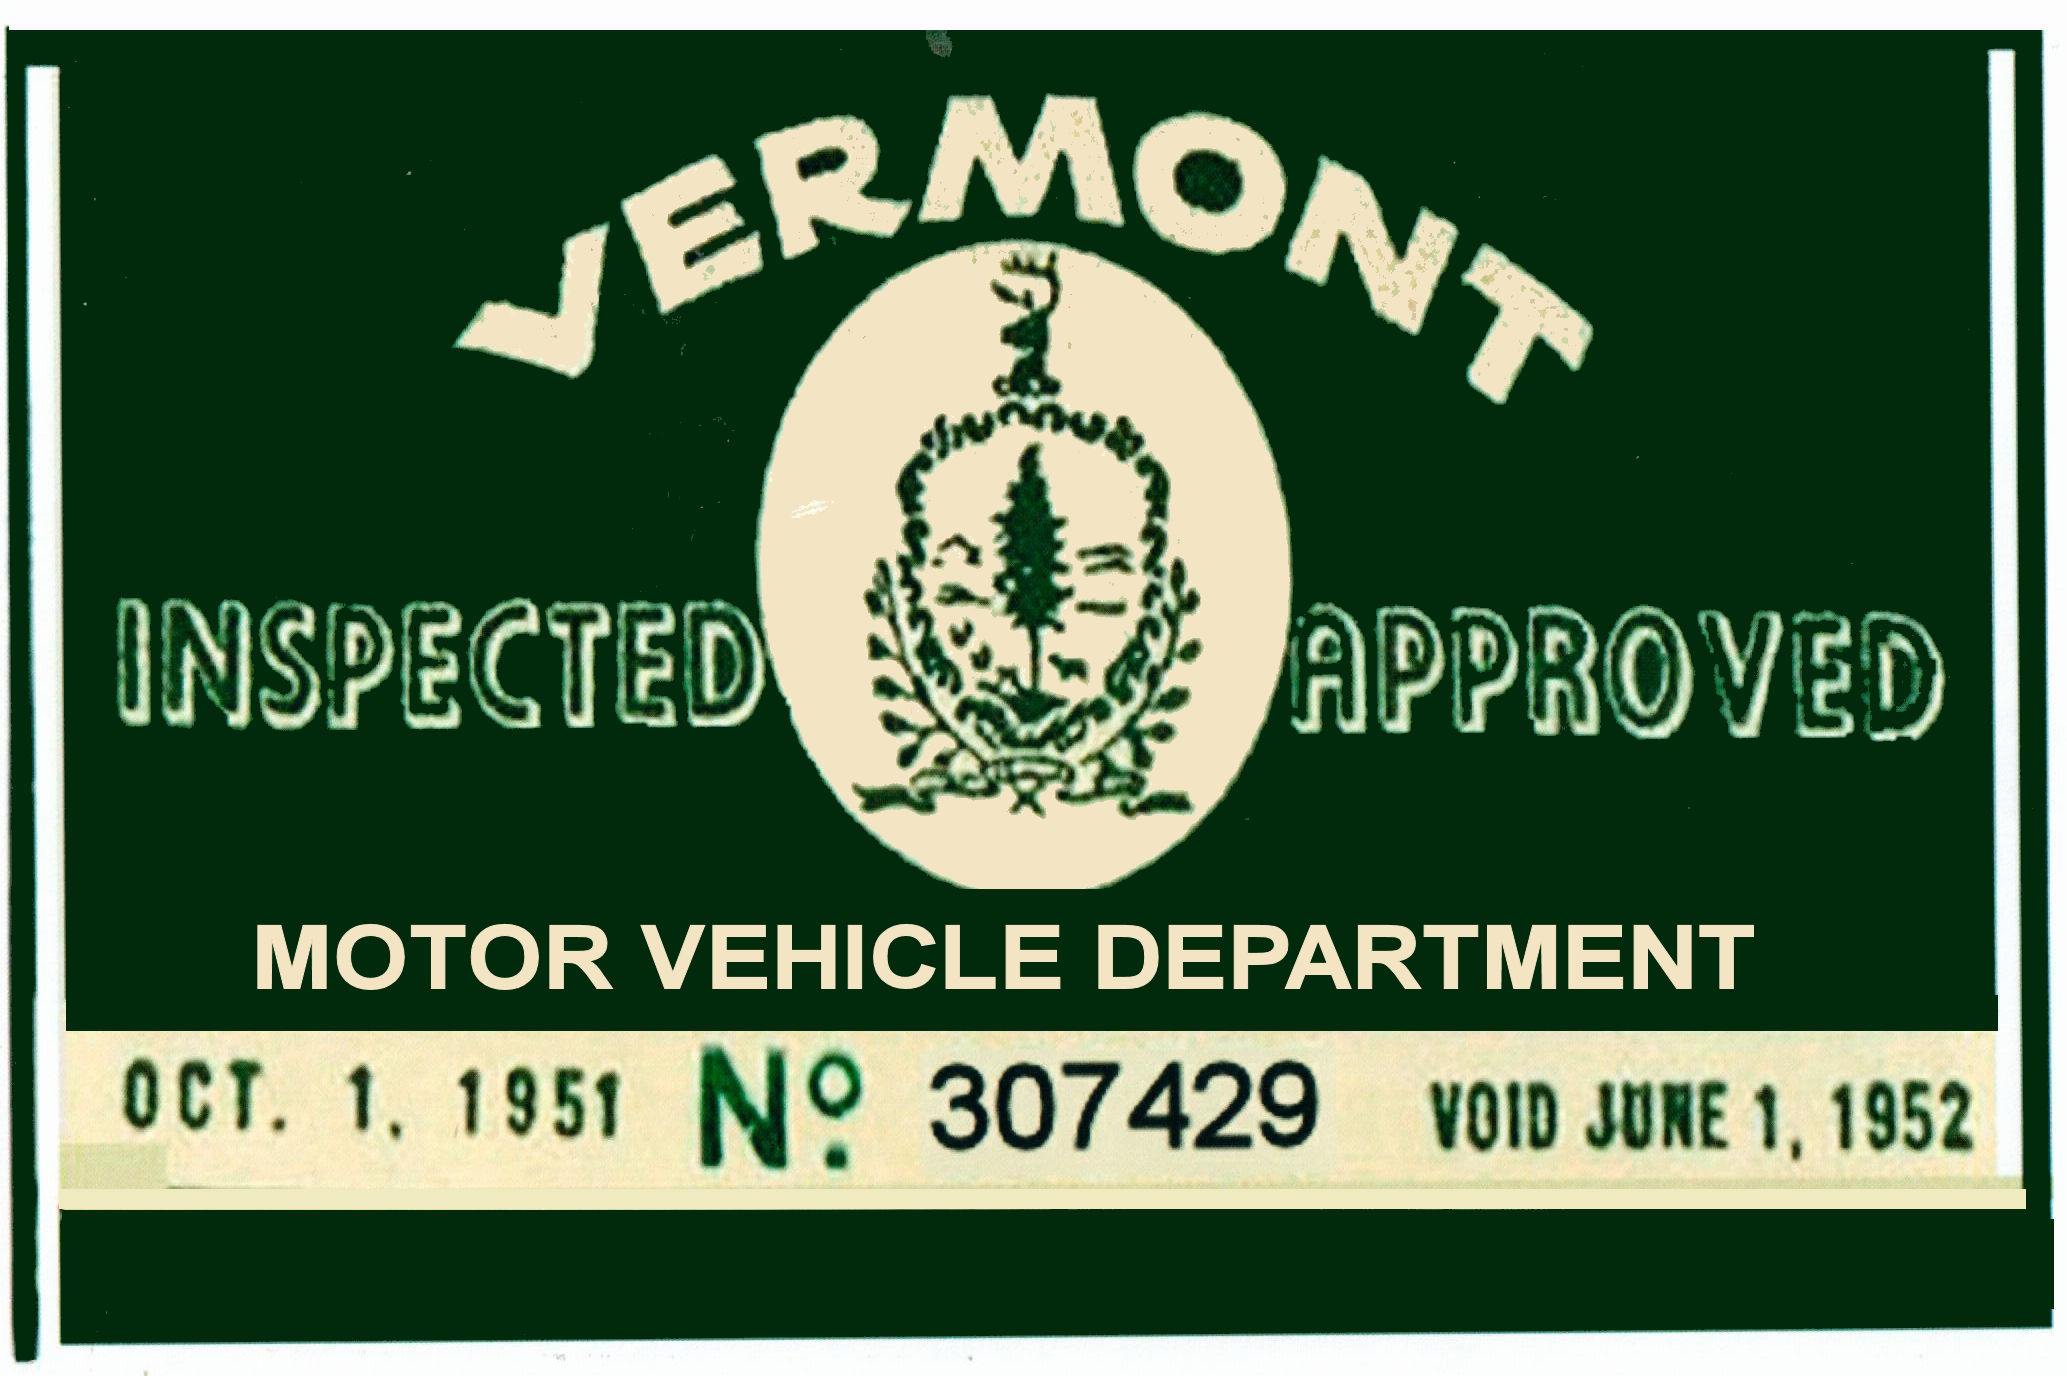 1951 VERMONT Inspection